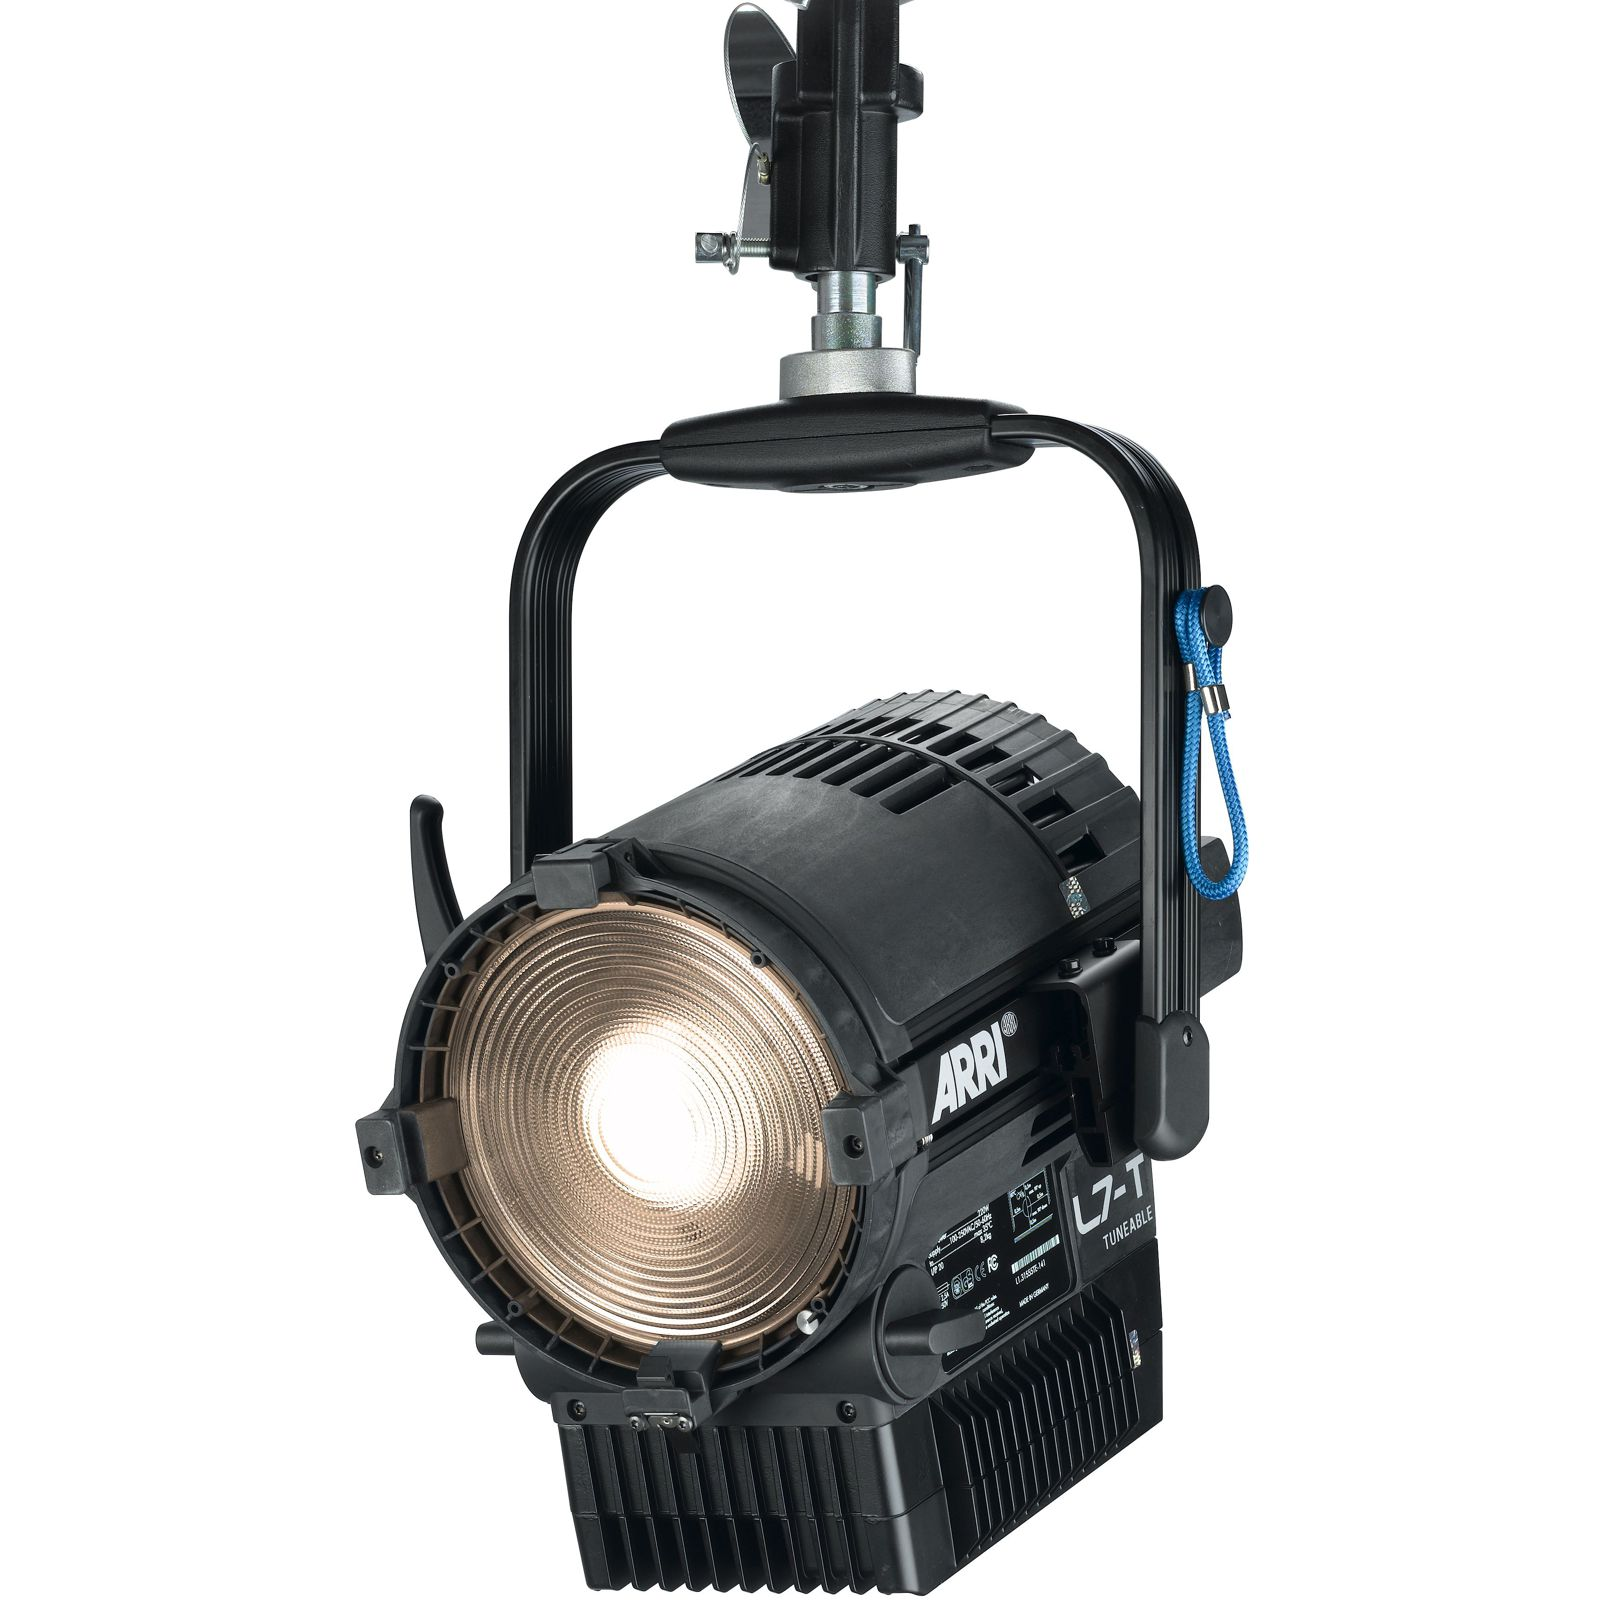 Прибор ARRI L7-TT L1.31530TA (Stand-Mount, Blue/Silver, 7 m Cable, Edison Connector)